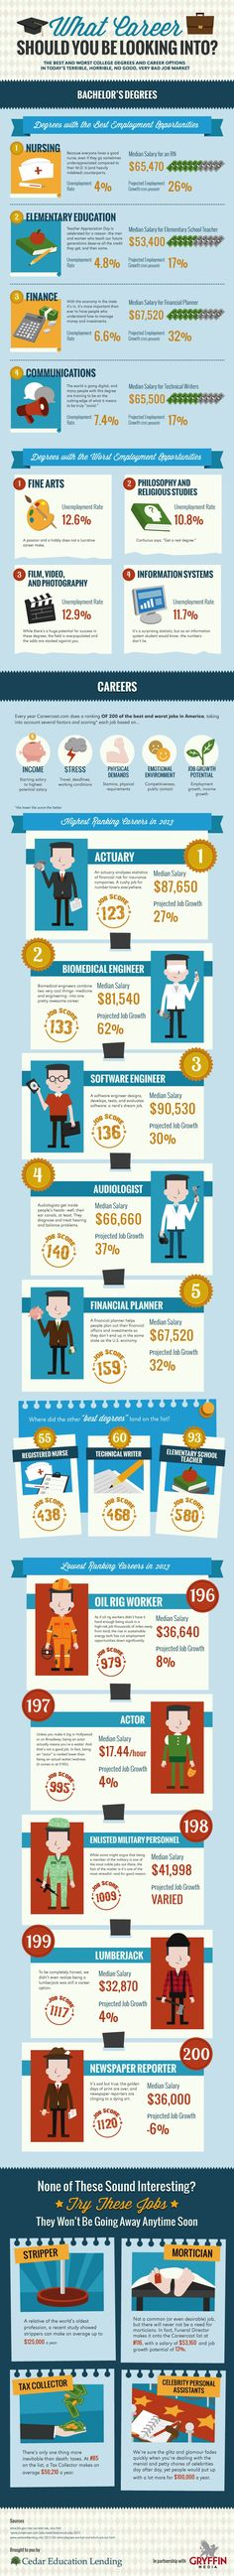 Which Jobs Have the Brightest Future? [INFOGRAPHIC] via @The Undercover Recruiter